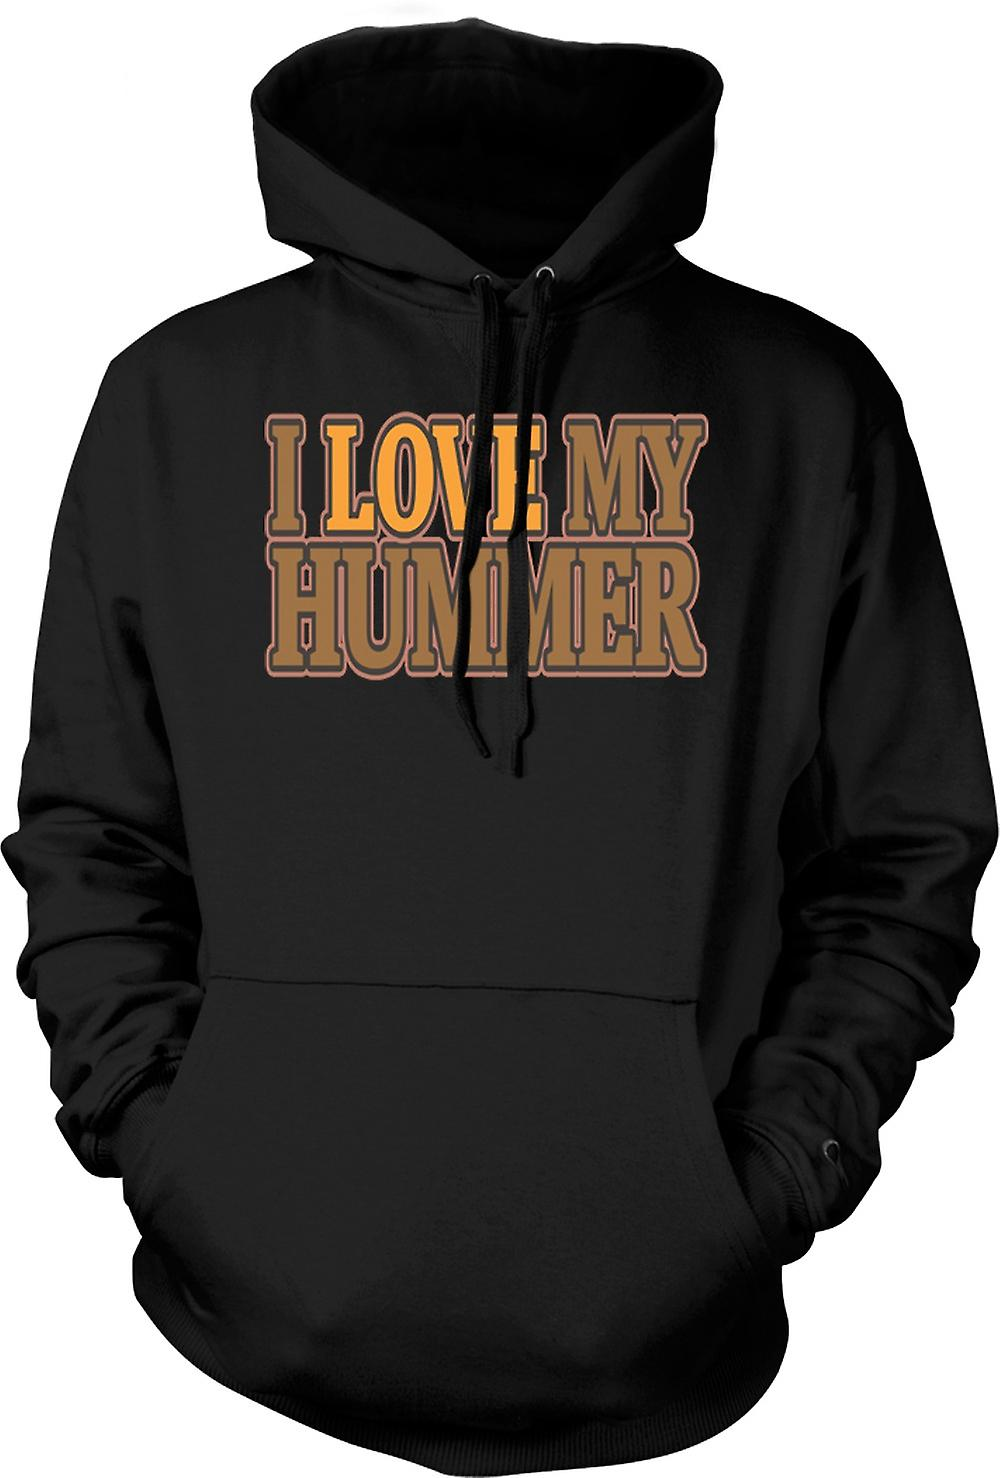 Mens Hoodie - I Love My Hummer - Car Enthusiast